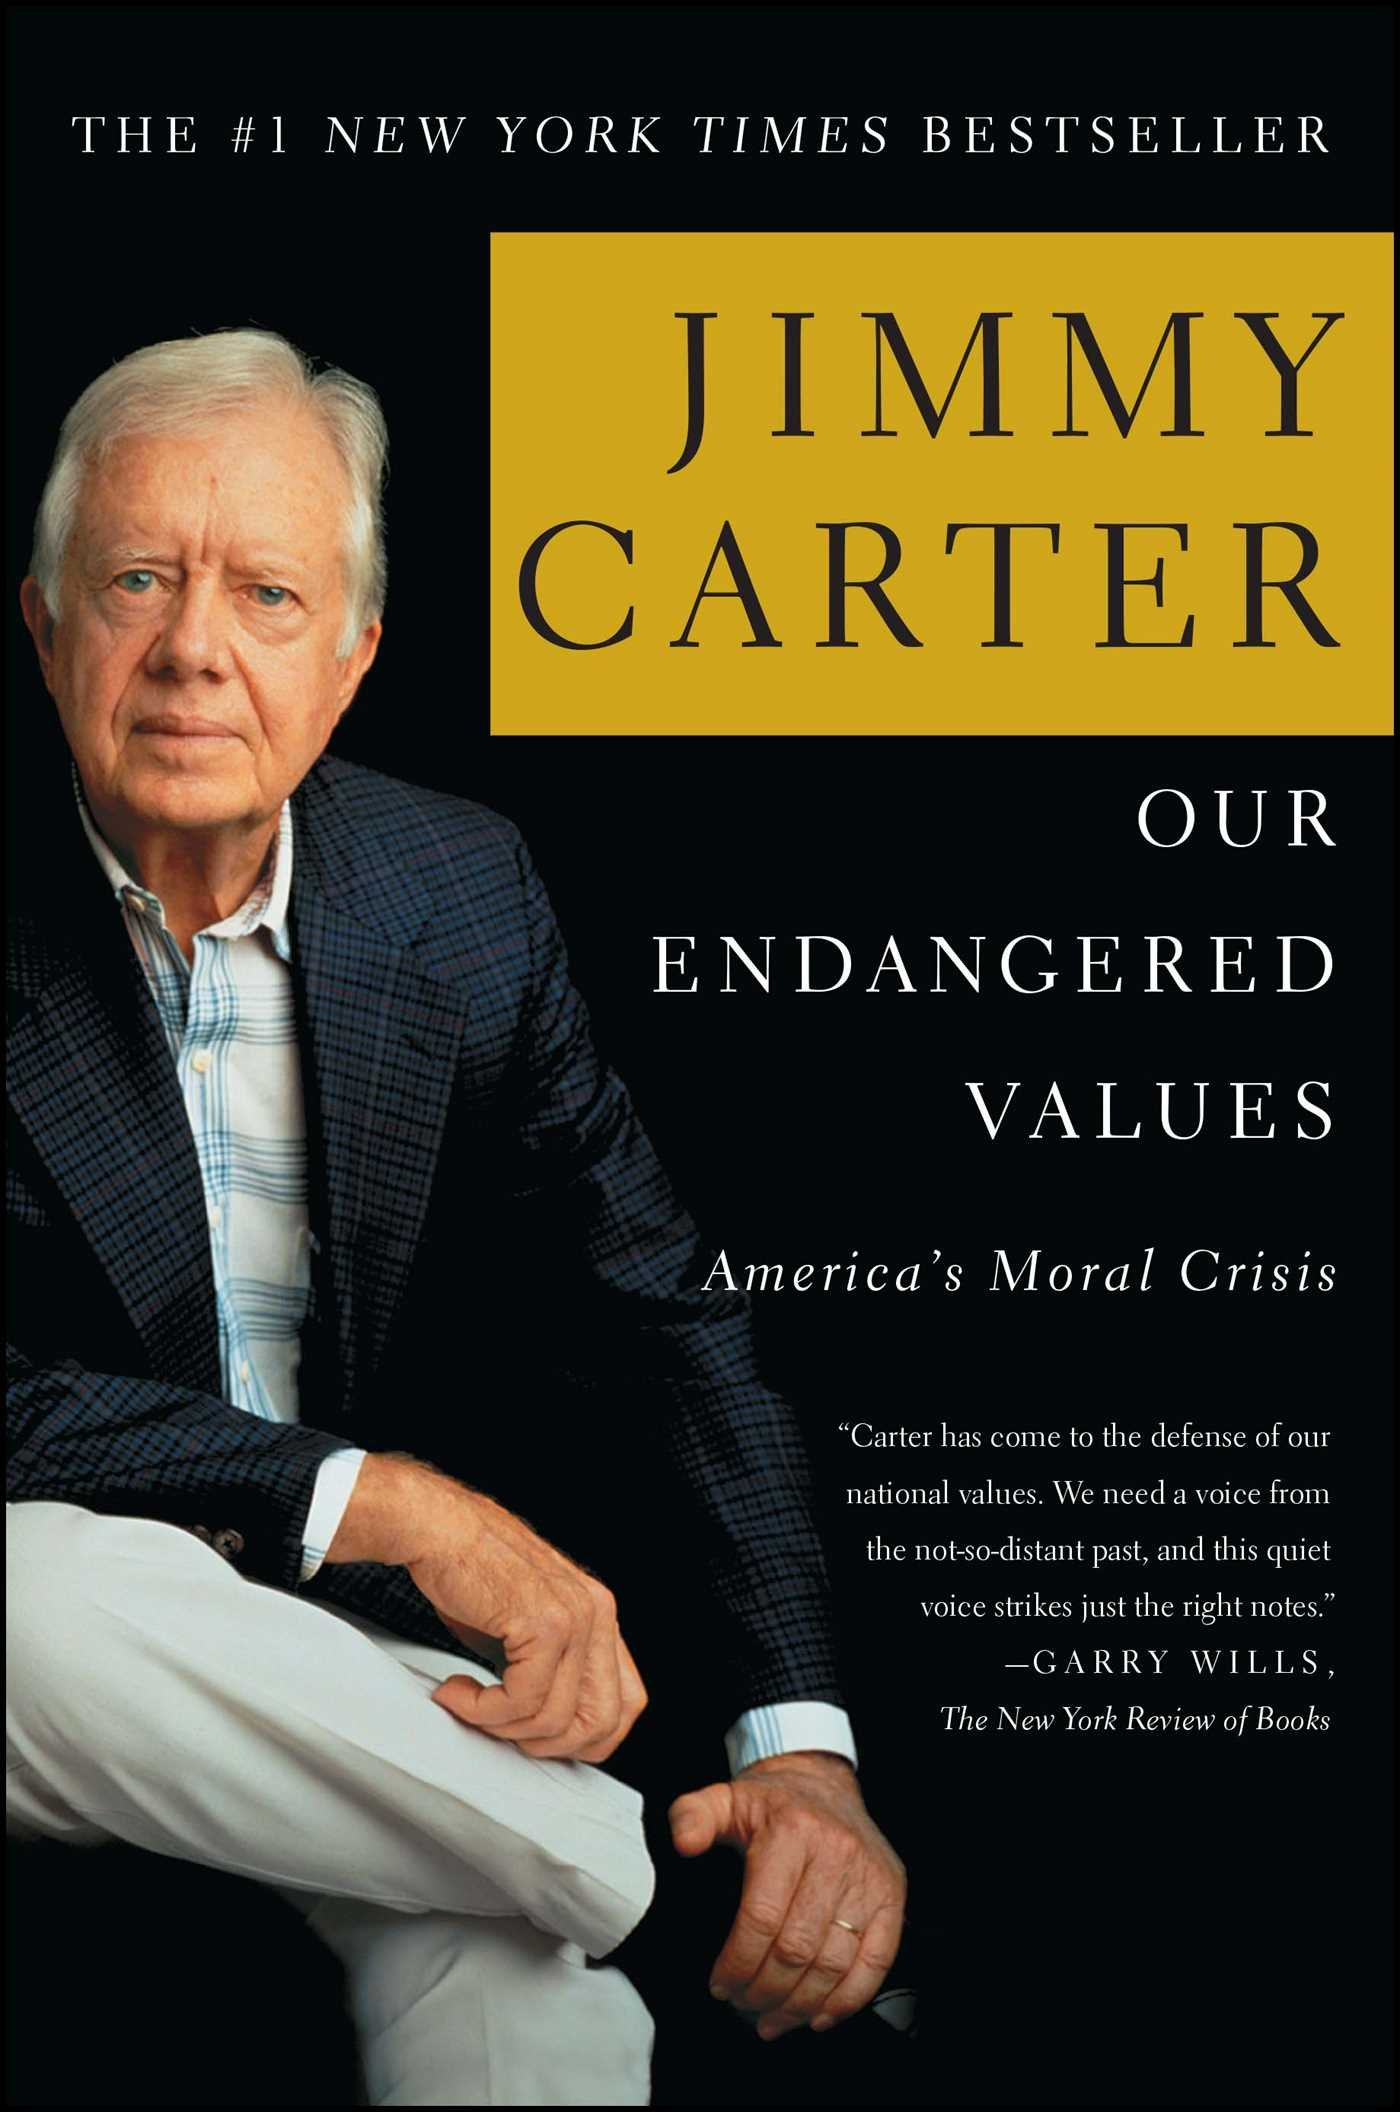 Our Endangered Values: America's Moral Crisis: Jimmy Carter: 9780743285018: Amazon.com: Books